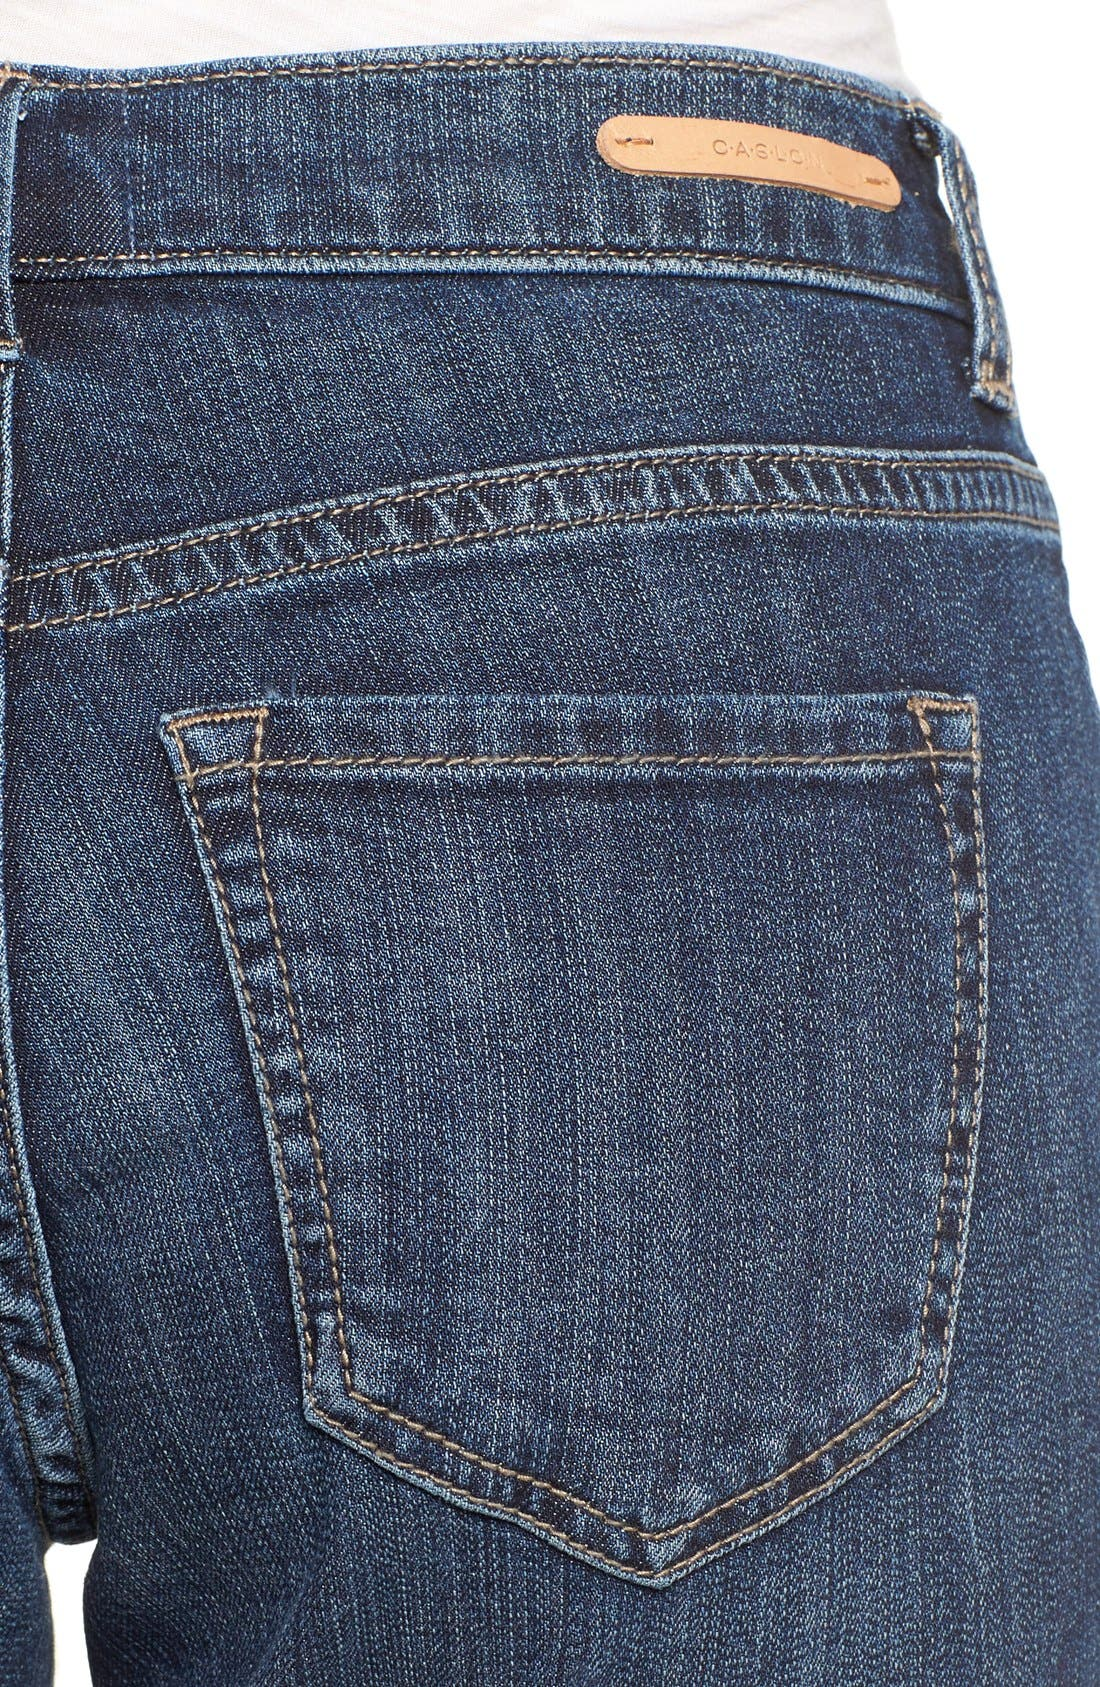 Boyfriend Jeans,                             Alternate thumbnail 4, color,                             Mirage Wash